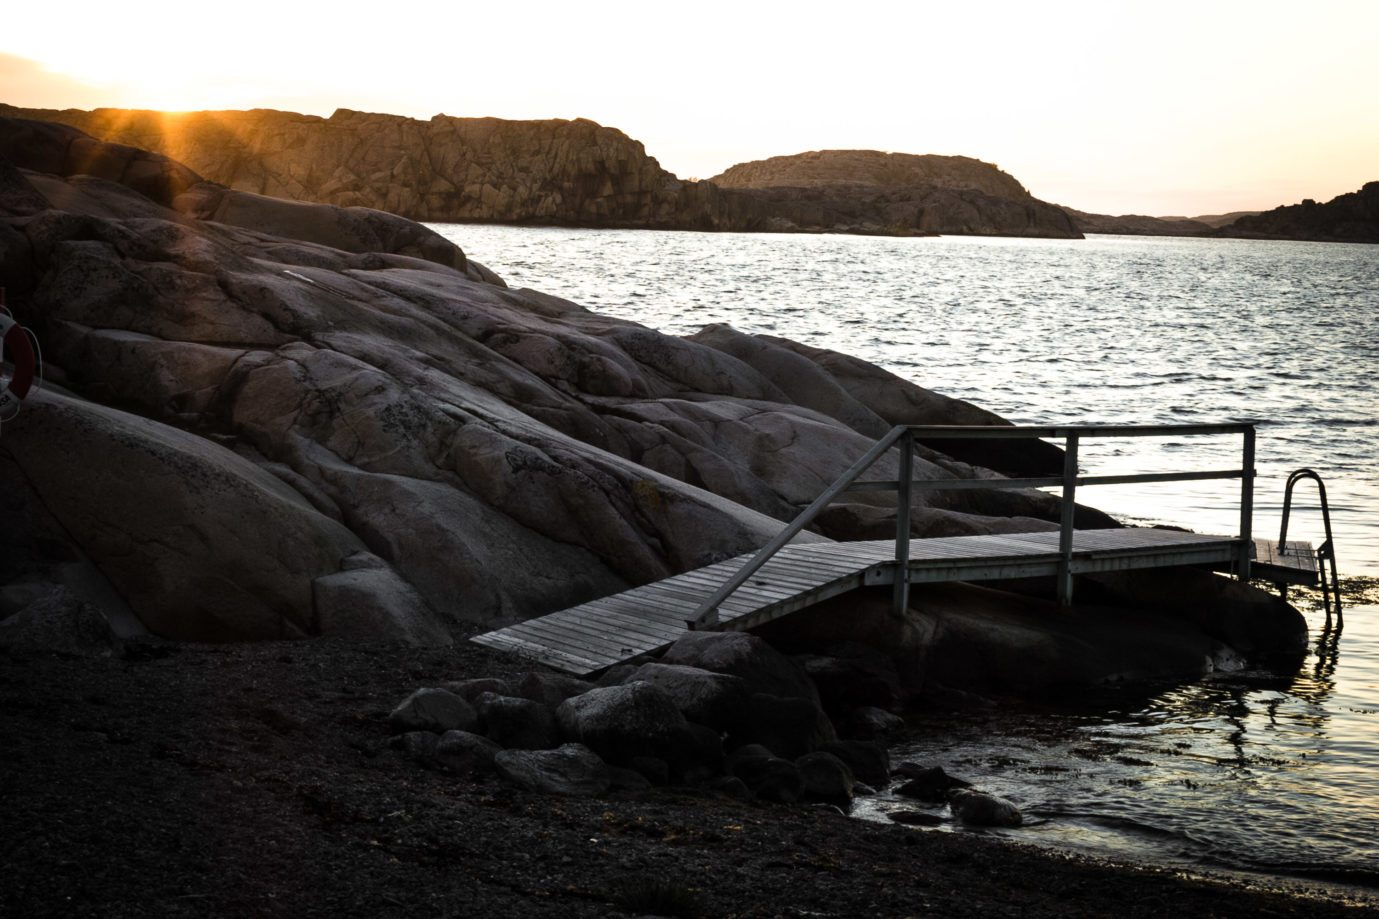 Camping in Hamburgö, a tiny island in the Swedish archipelago, thanks to allmansrätten. Cycle Touring Scandinavia